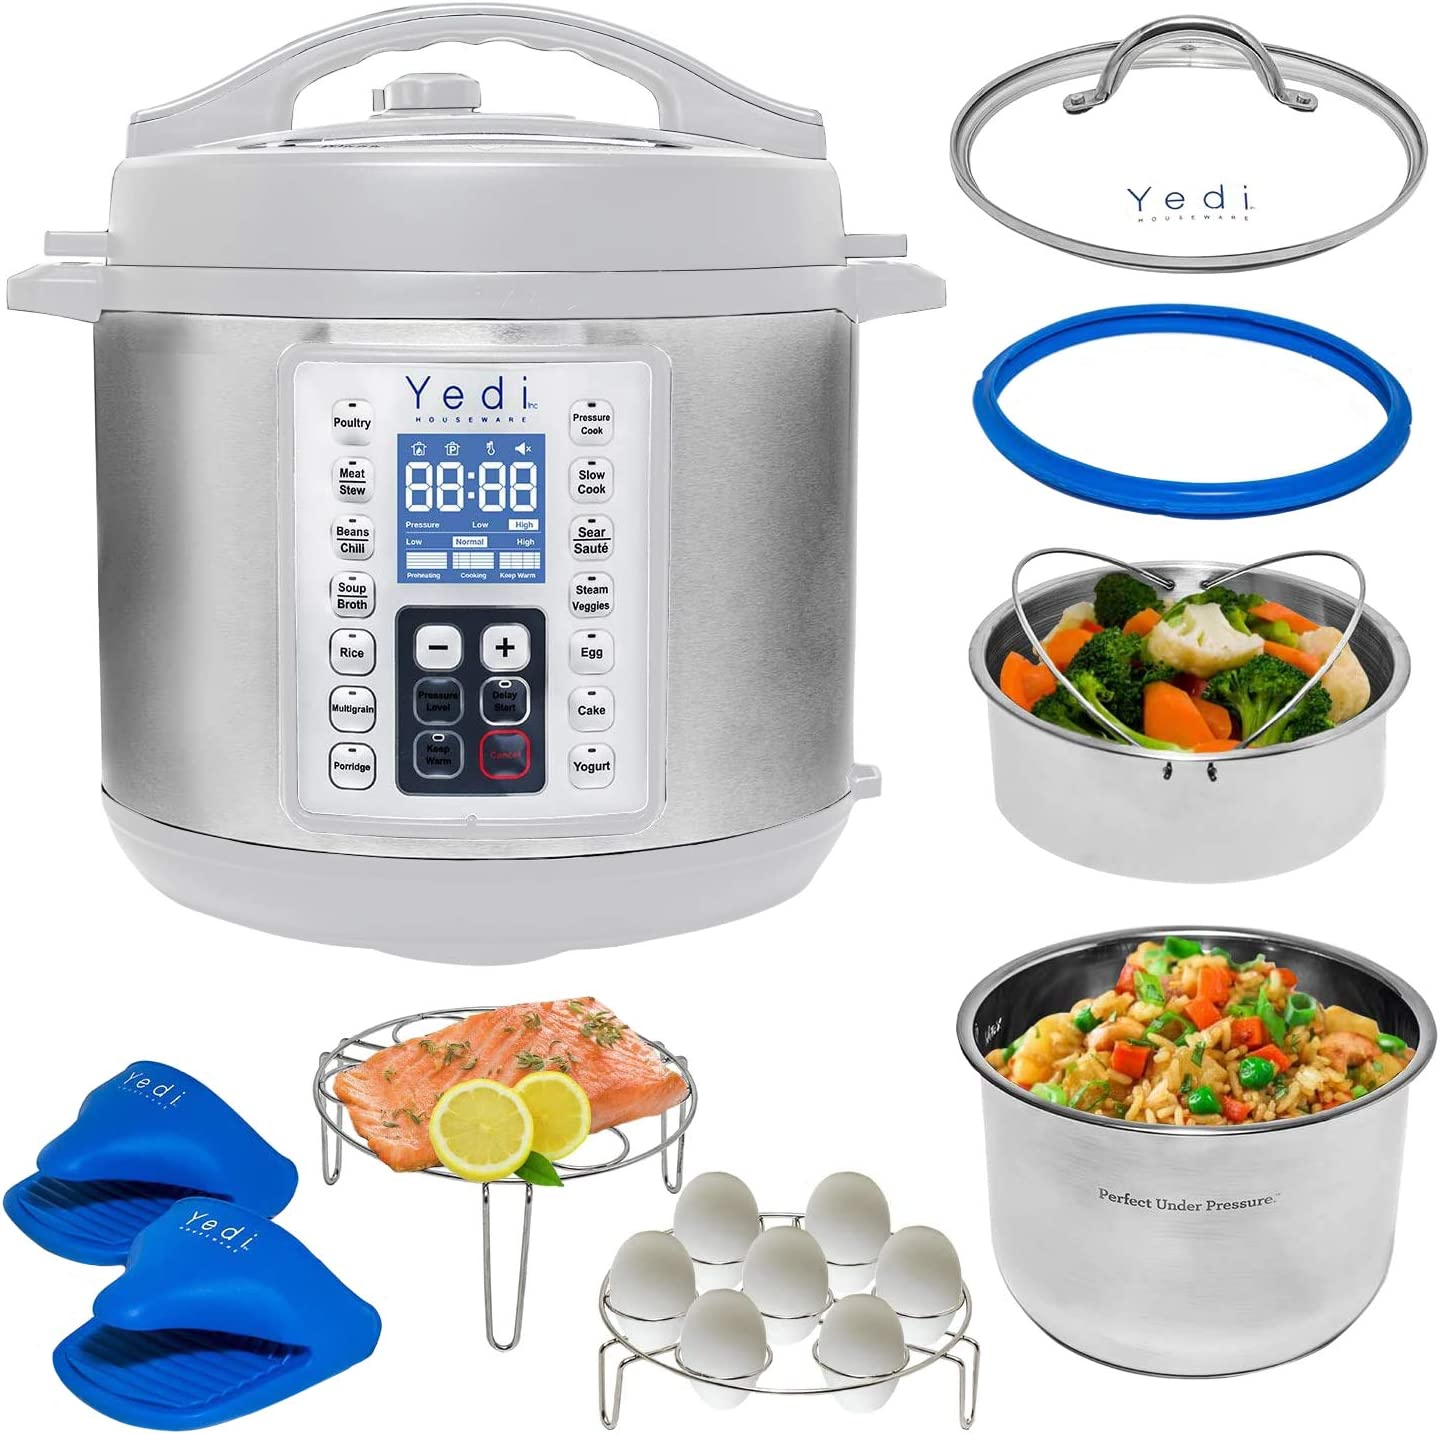 Yedi 9-in-1 Total Package Instant Programmable Pressure Cooker, 6 Quart, Deluxe Accessory kit, Recipes, Pressure Cook, Slow Cook, Rice Cooker, Yogurt Maker, Egg Cook, Sauté, Steamer, White